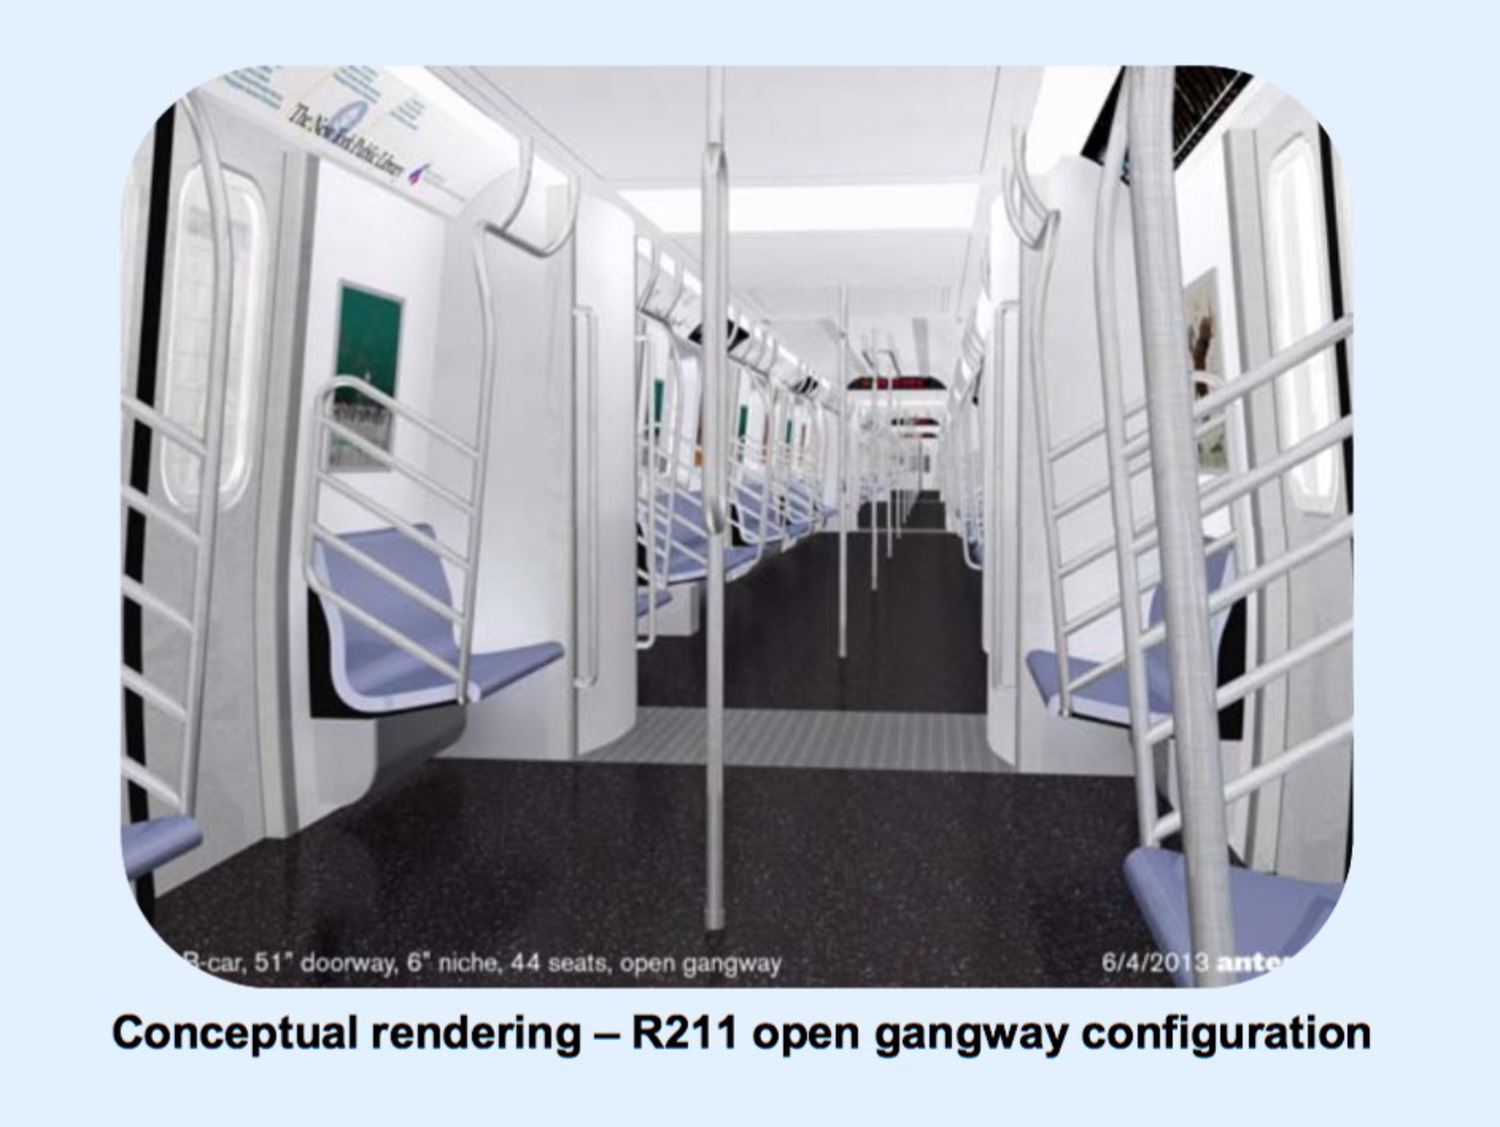 Conceptual rendering – R211 open gangway configuration